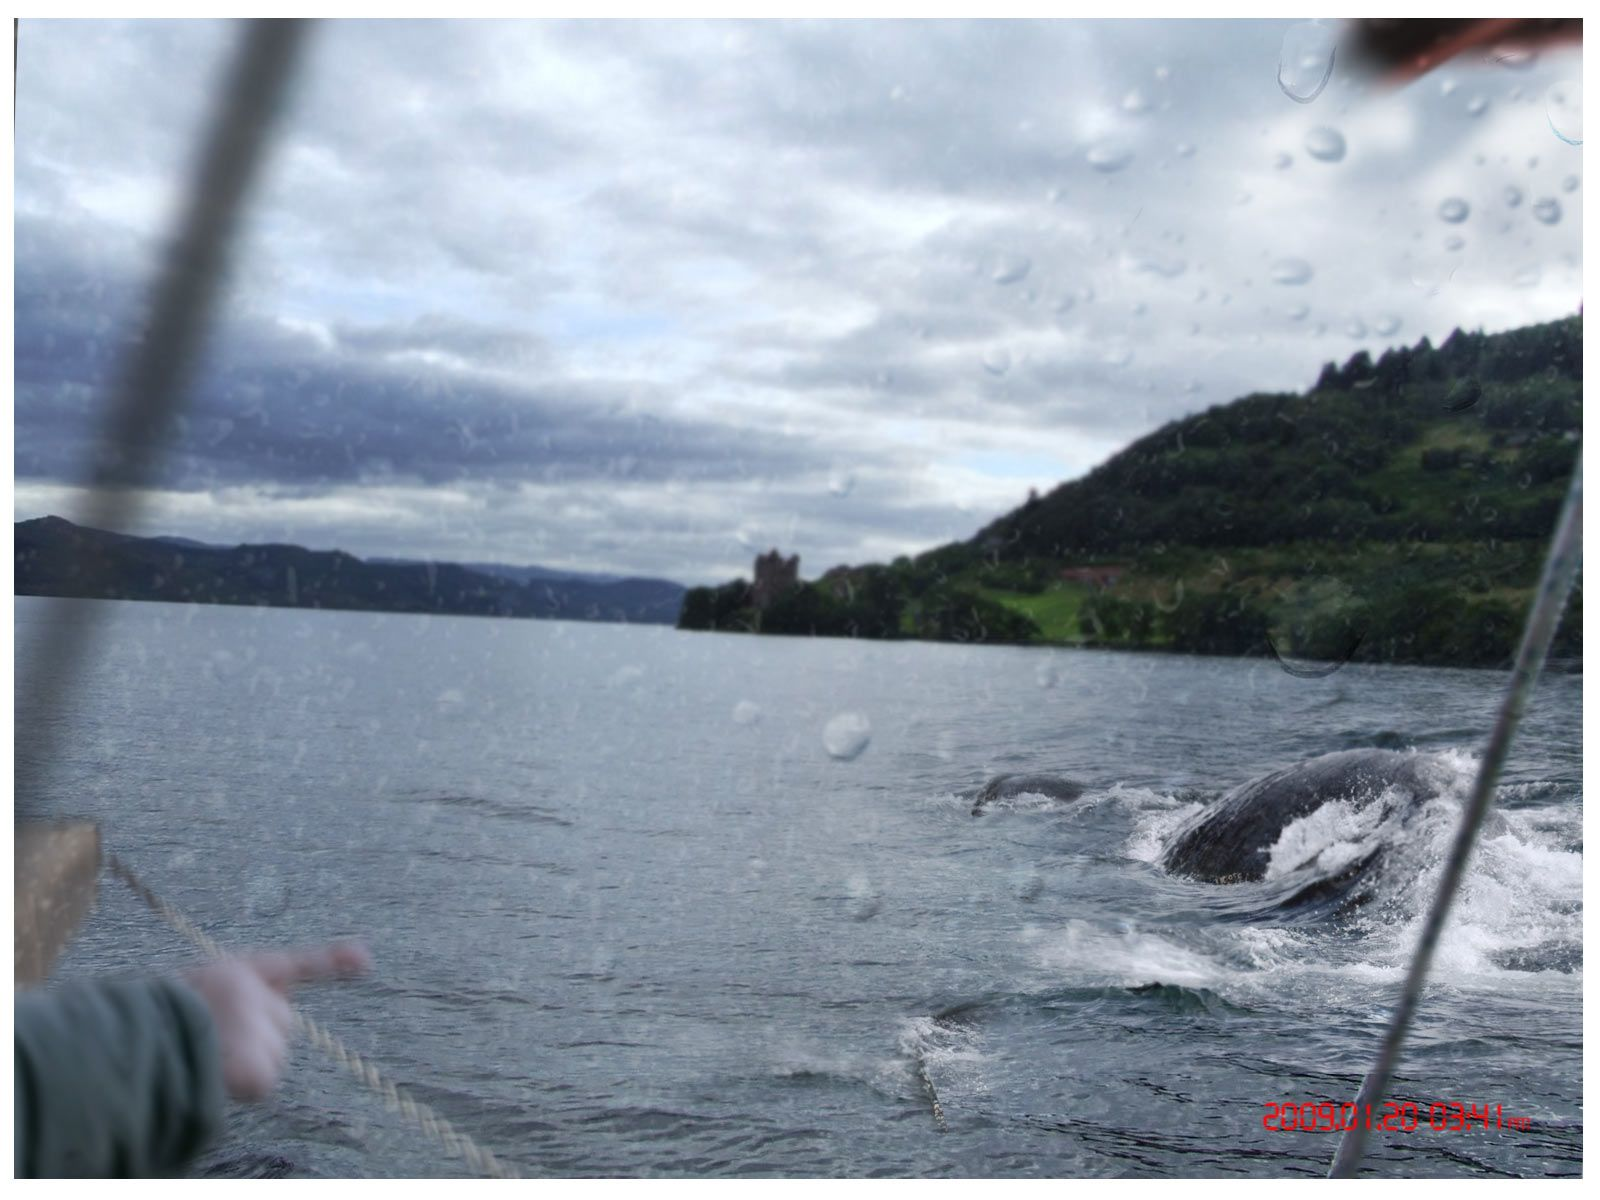 the mystery of the loch ness monster The infamous loch ness monster often appears, according to legend, accompanied by earth tremors and swirling bubbles.